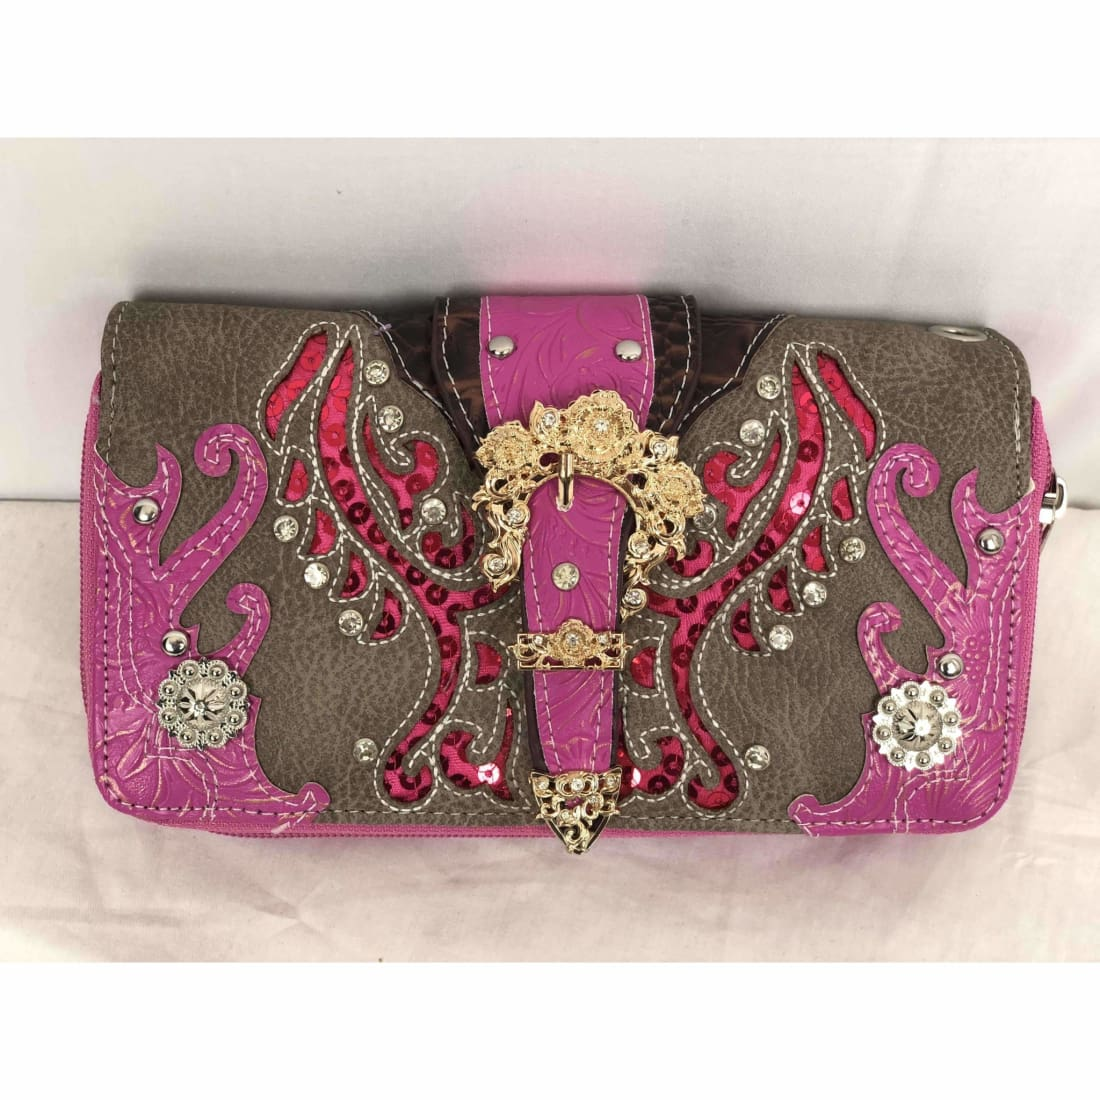 Cowgirl Trendy Gold Belt Buckle Wallet W/wrist Strap Purse